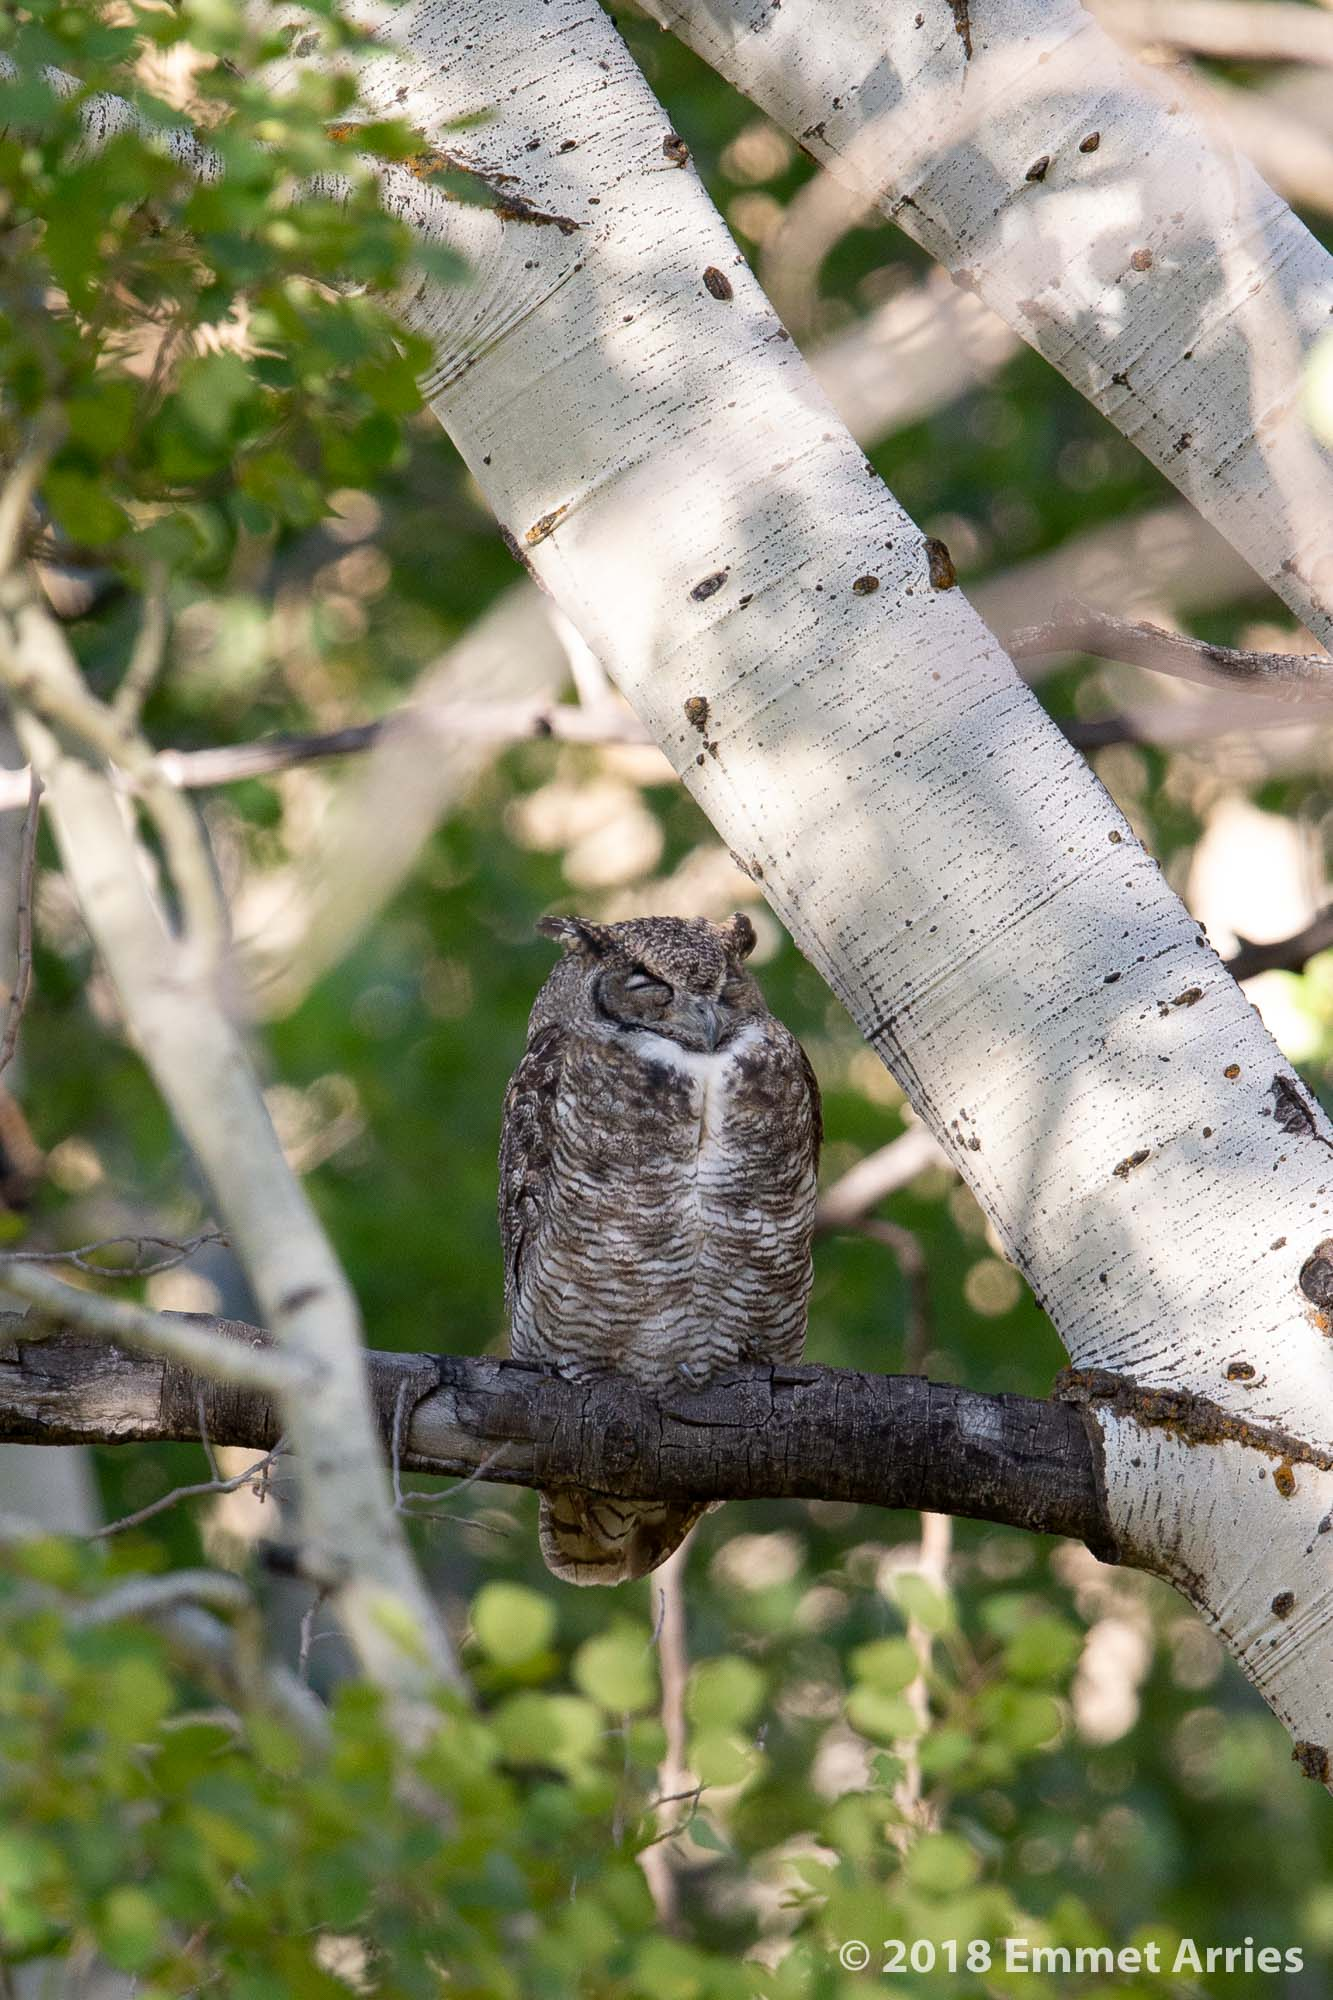 A sleepy Great Howned Owl takes a midday rest on a branch in an aspen grove near Grand Teton National Park.